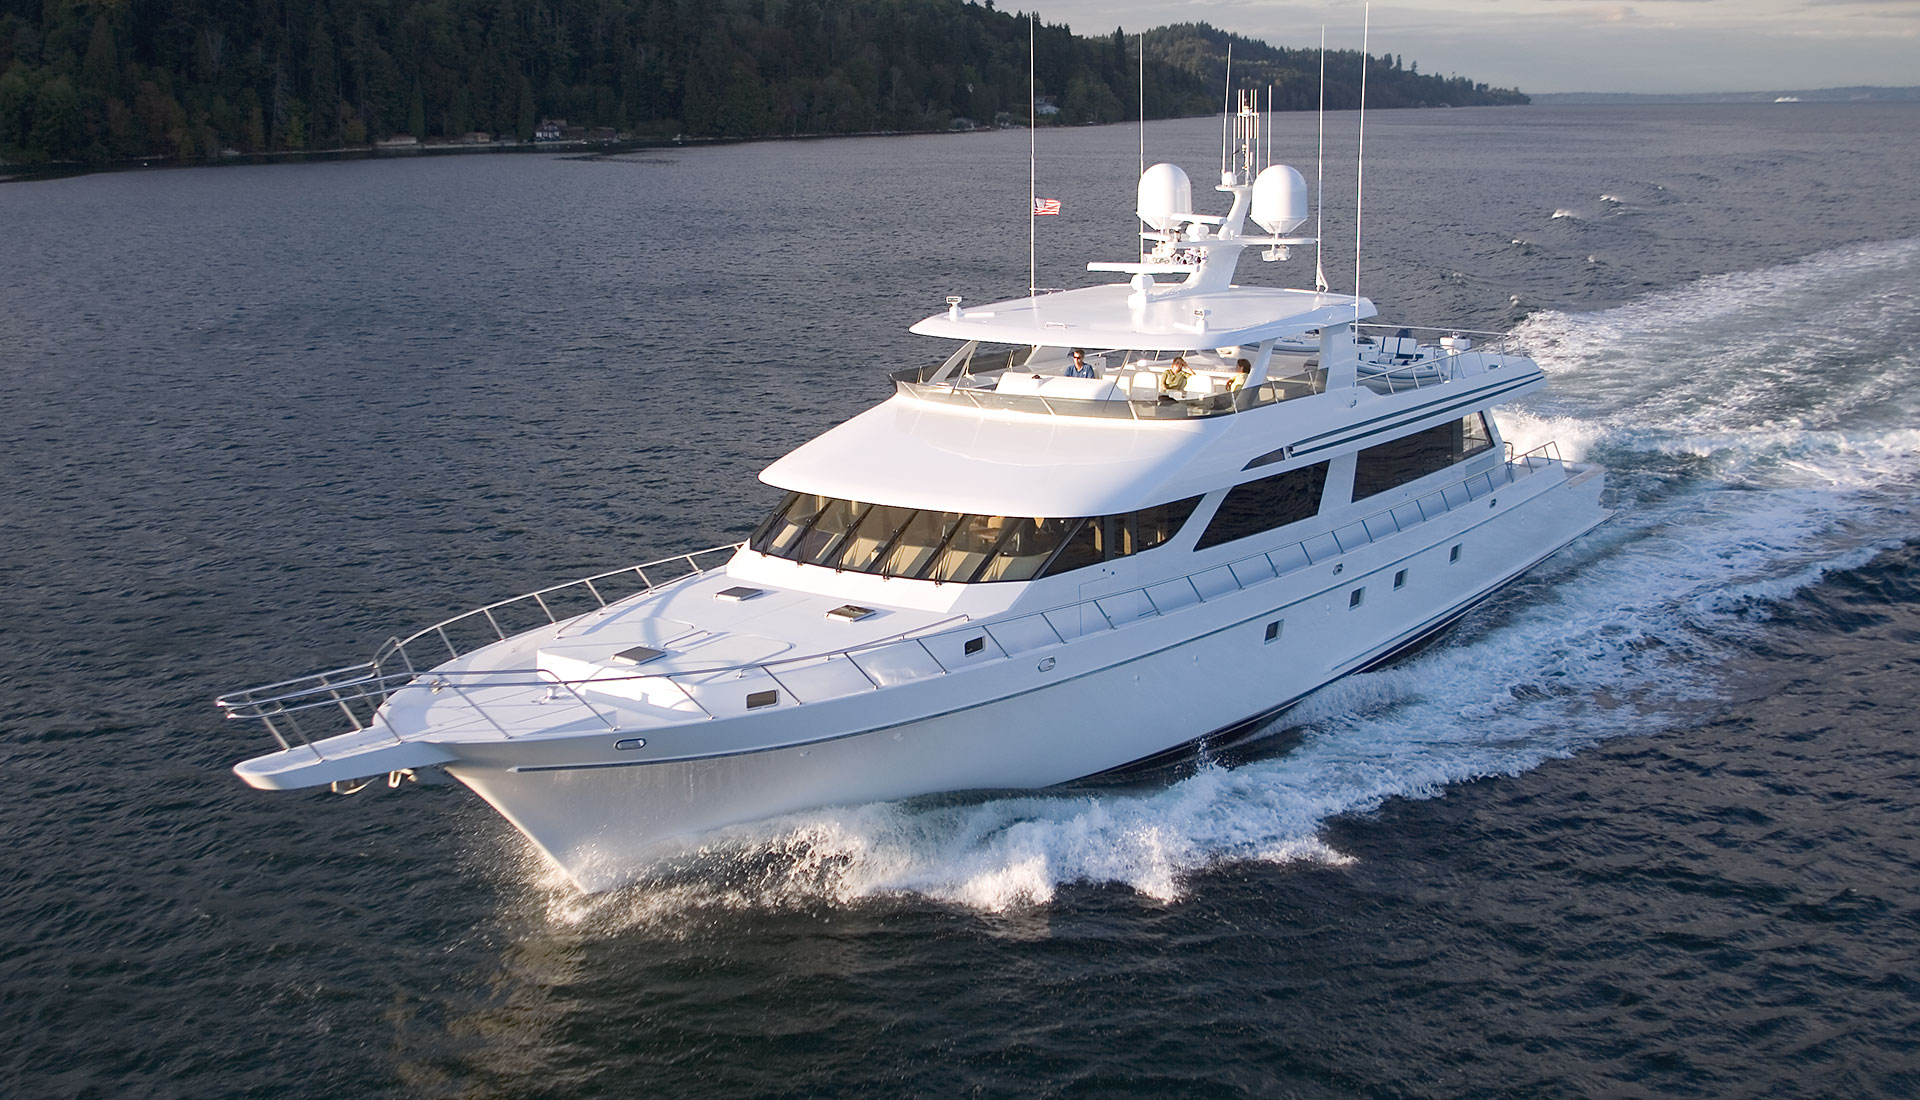 118' Sportfisher Yacht Southern Way Built by Nordlund Boat Company